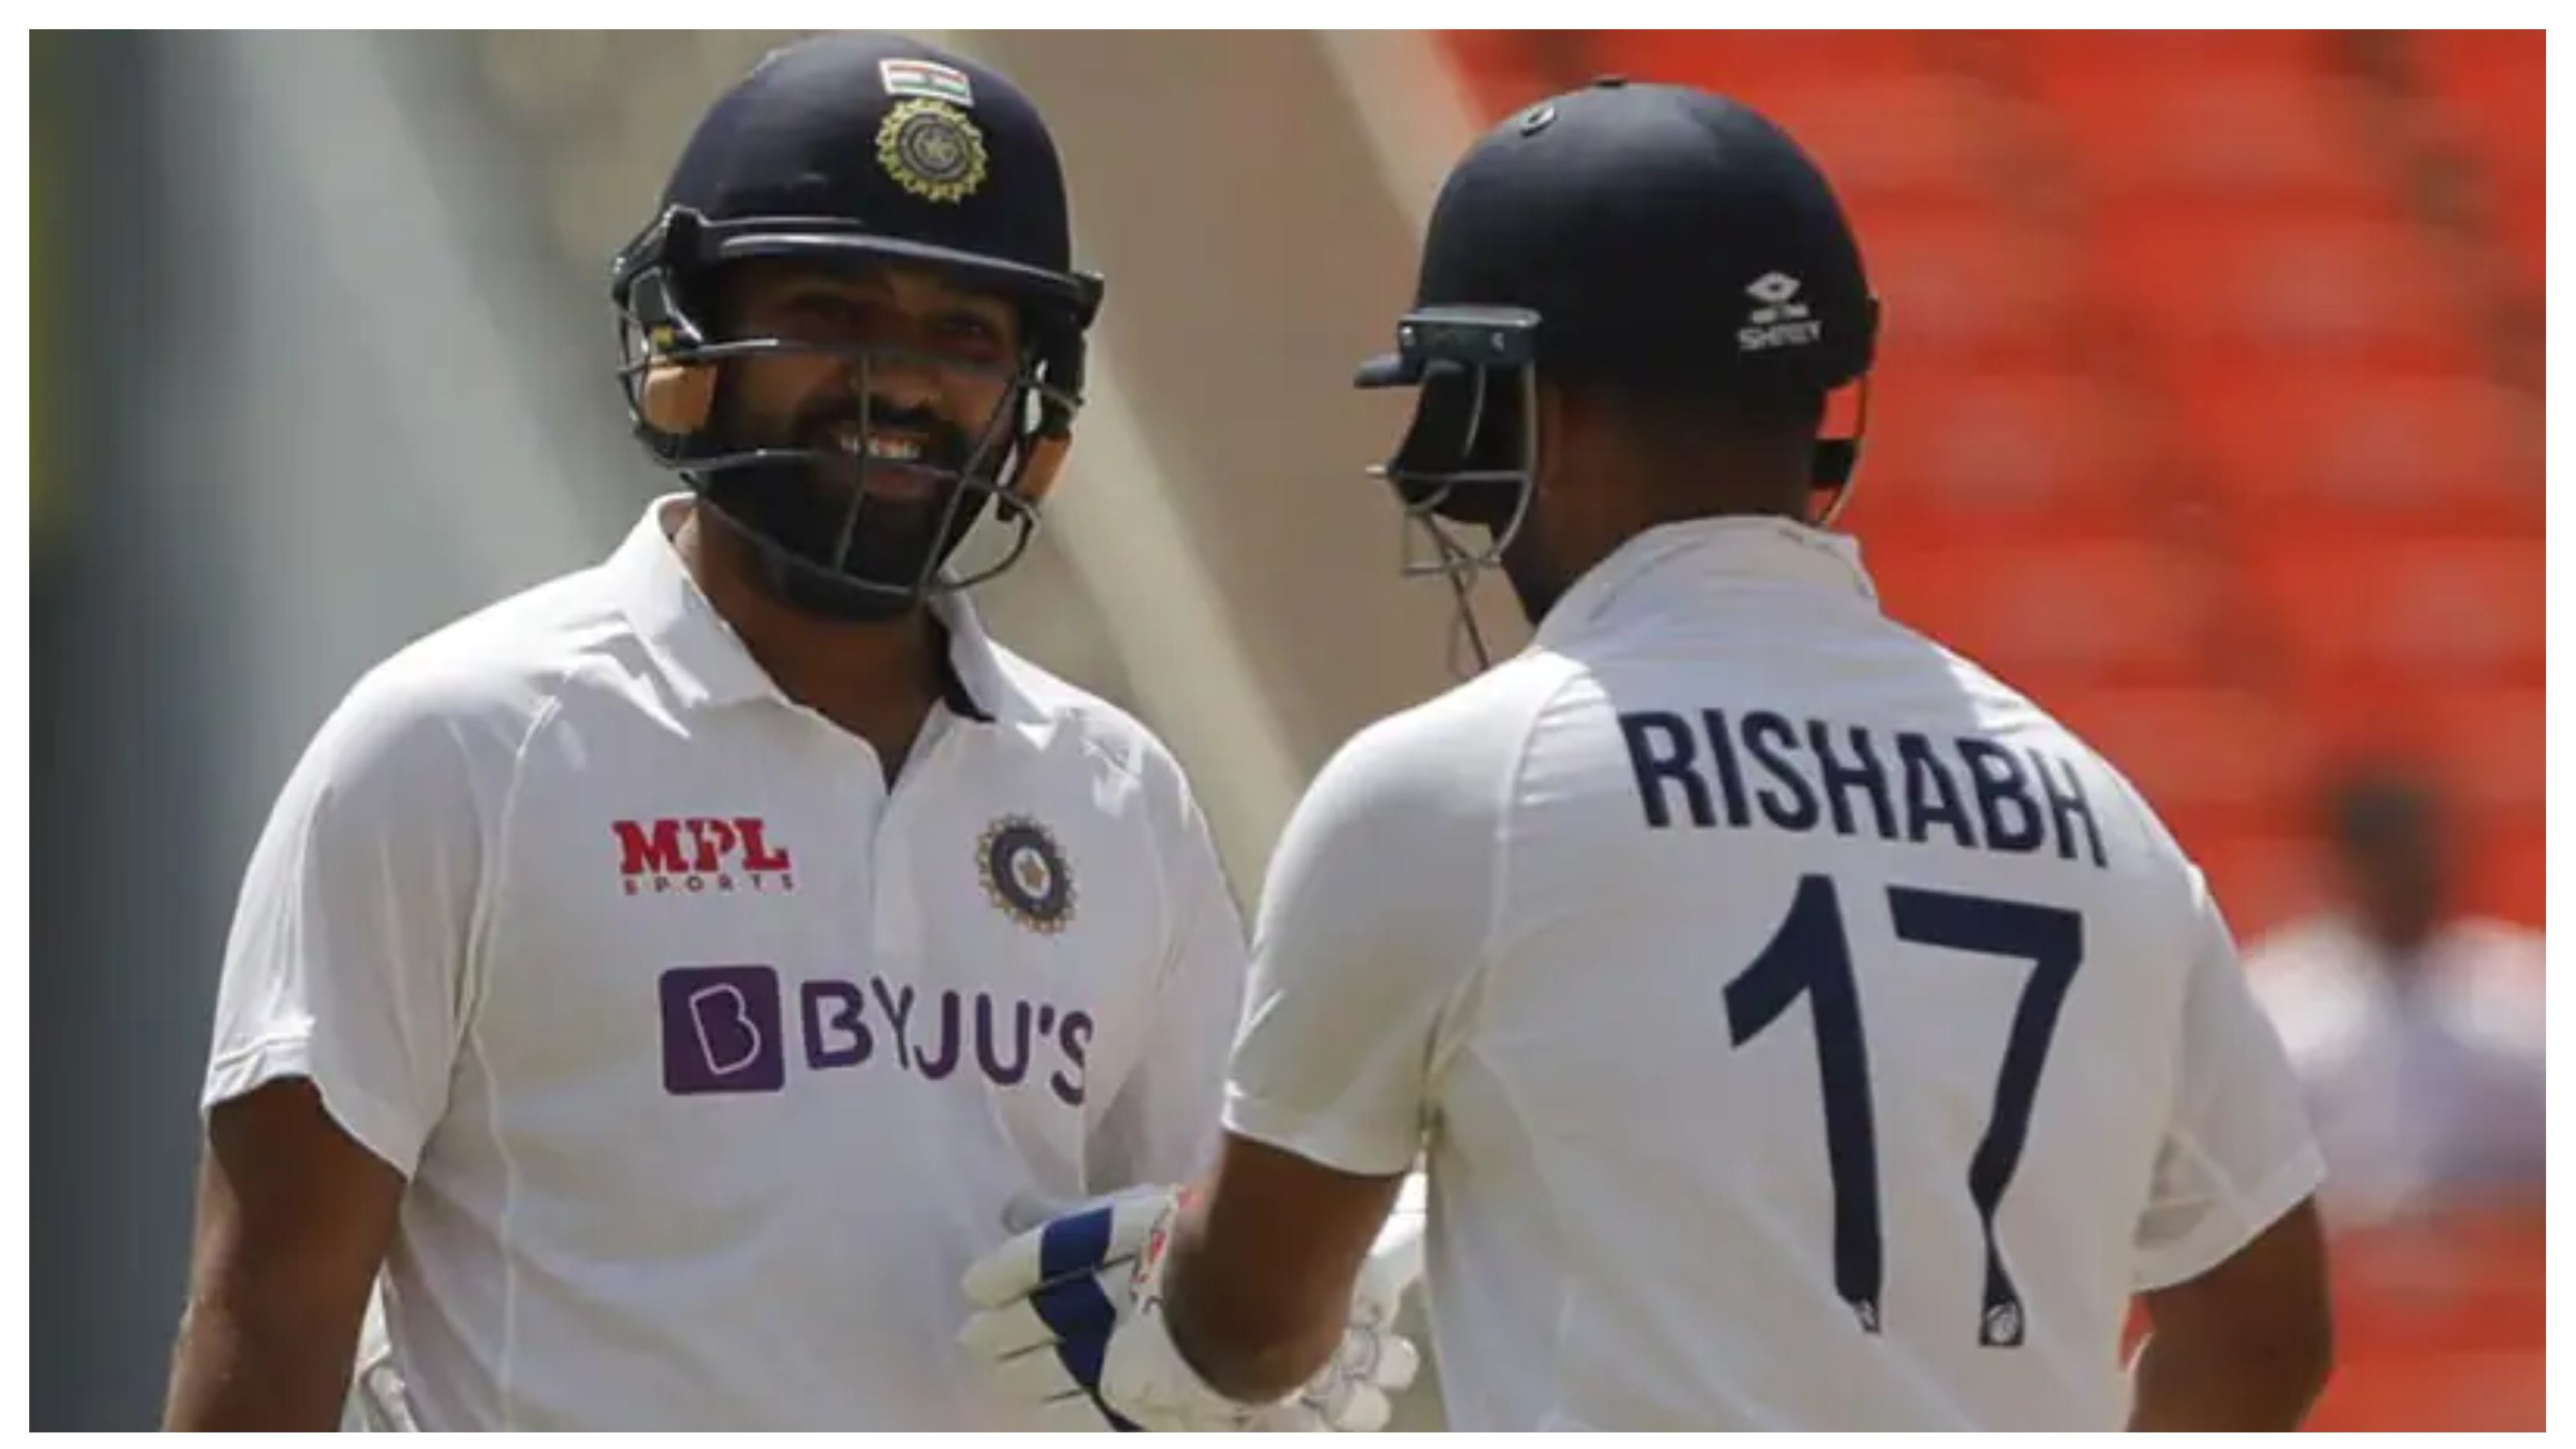 Rishabh Pant, Rohit Sharma climb up to reach joint-sixth position in updated ICC Test batting rankings